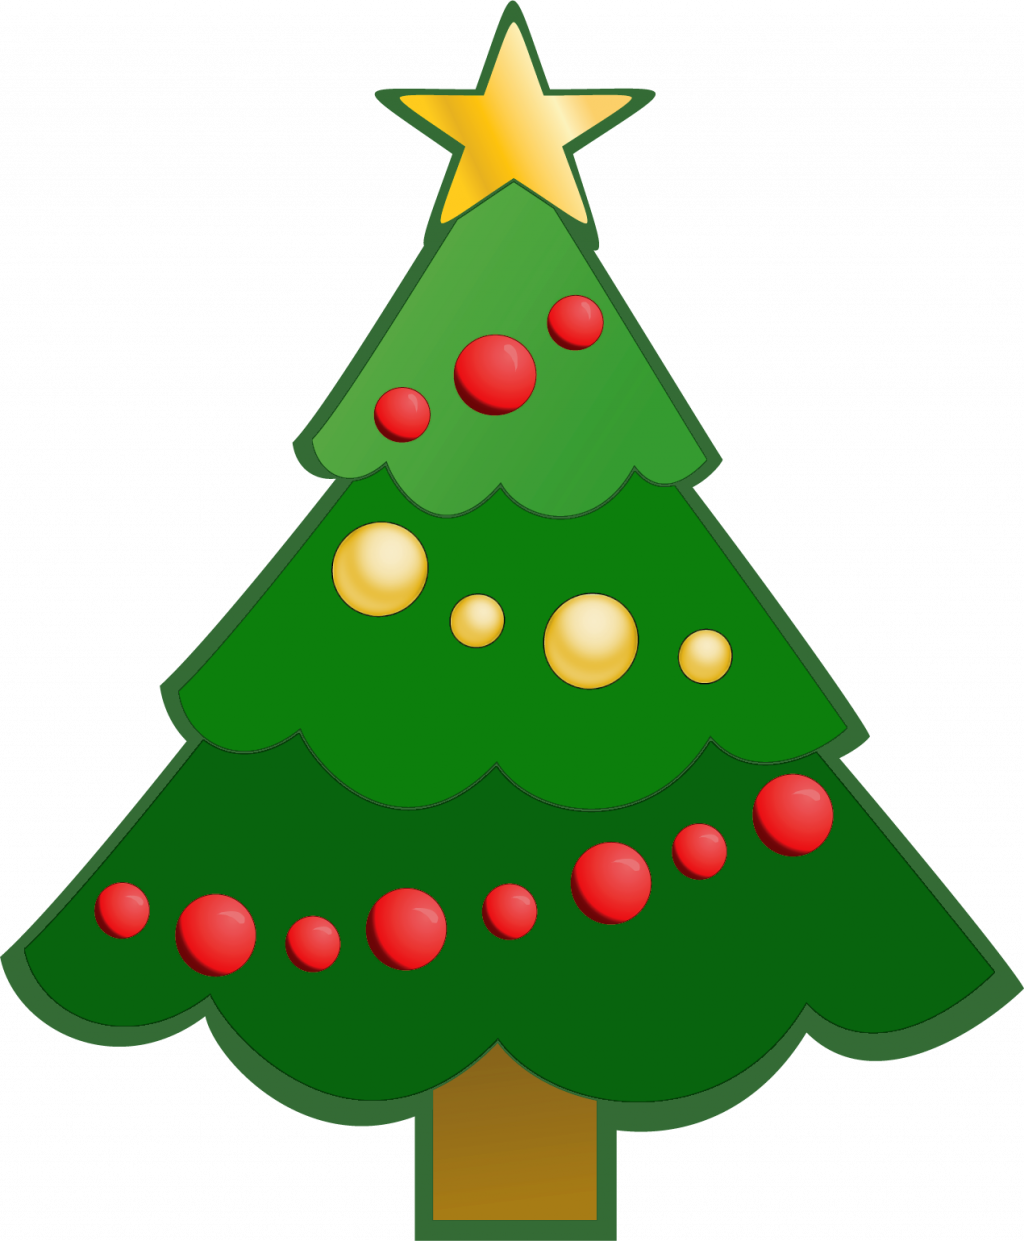 Transparent free clipart for christmas - Christmas ~ Christmas Clip Art Phenomenal Tree Clipart - Clipart Simple Christmas Tree